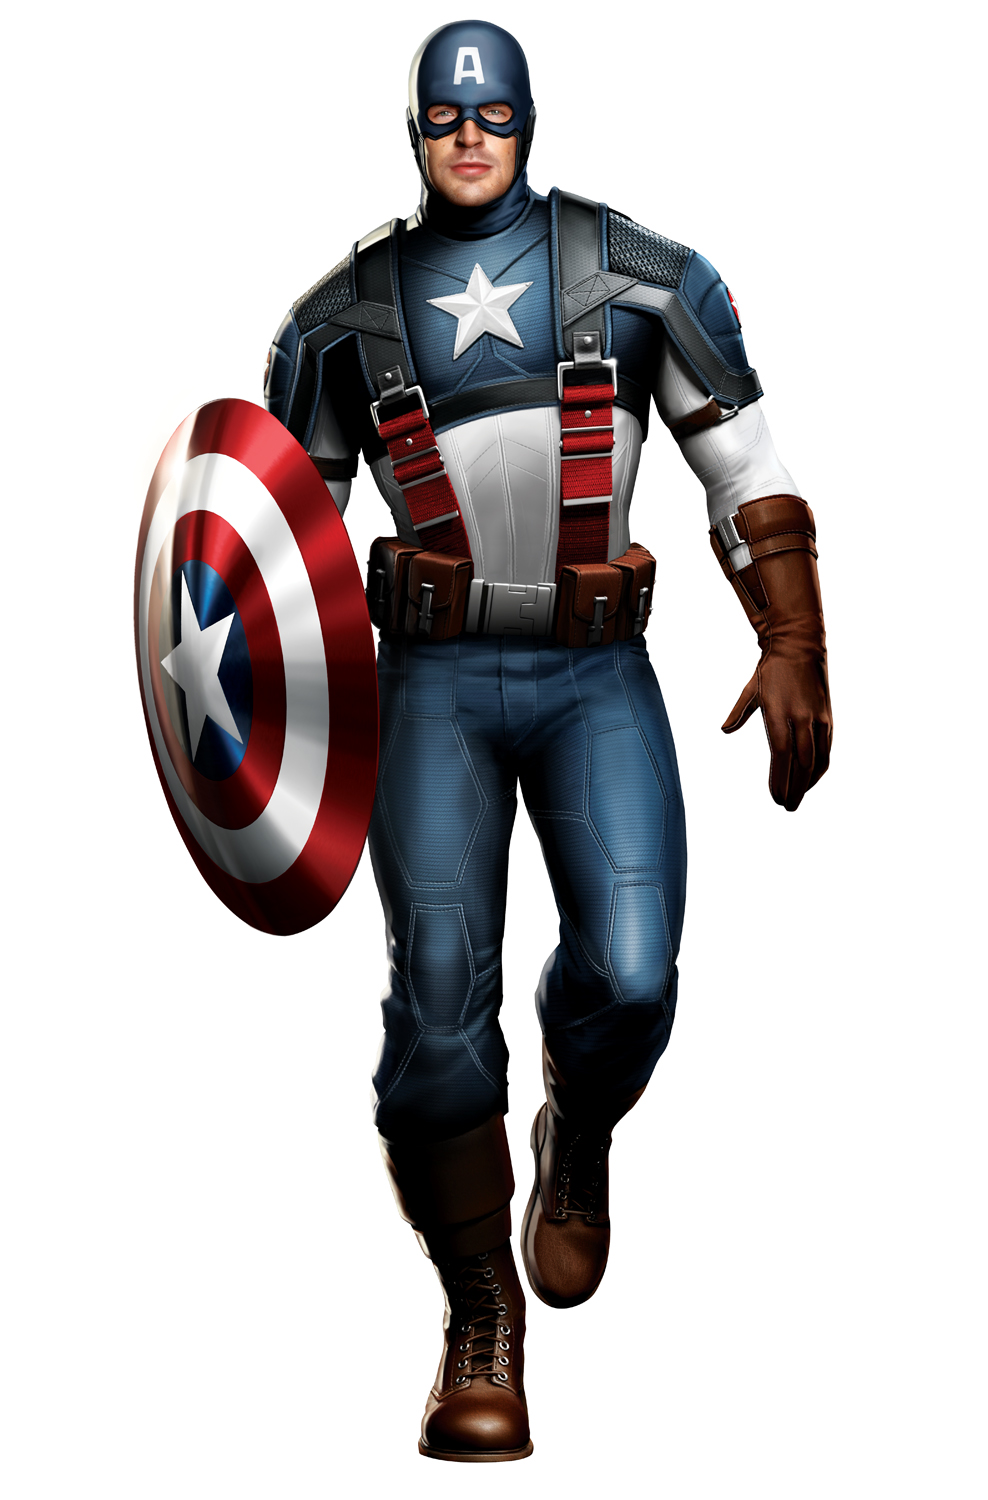 Captain America with Indestructible Shield